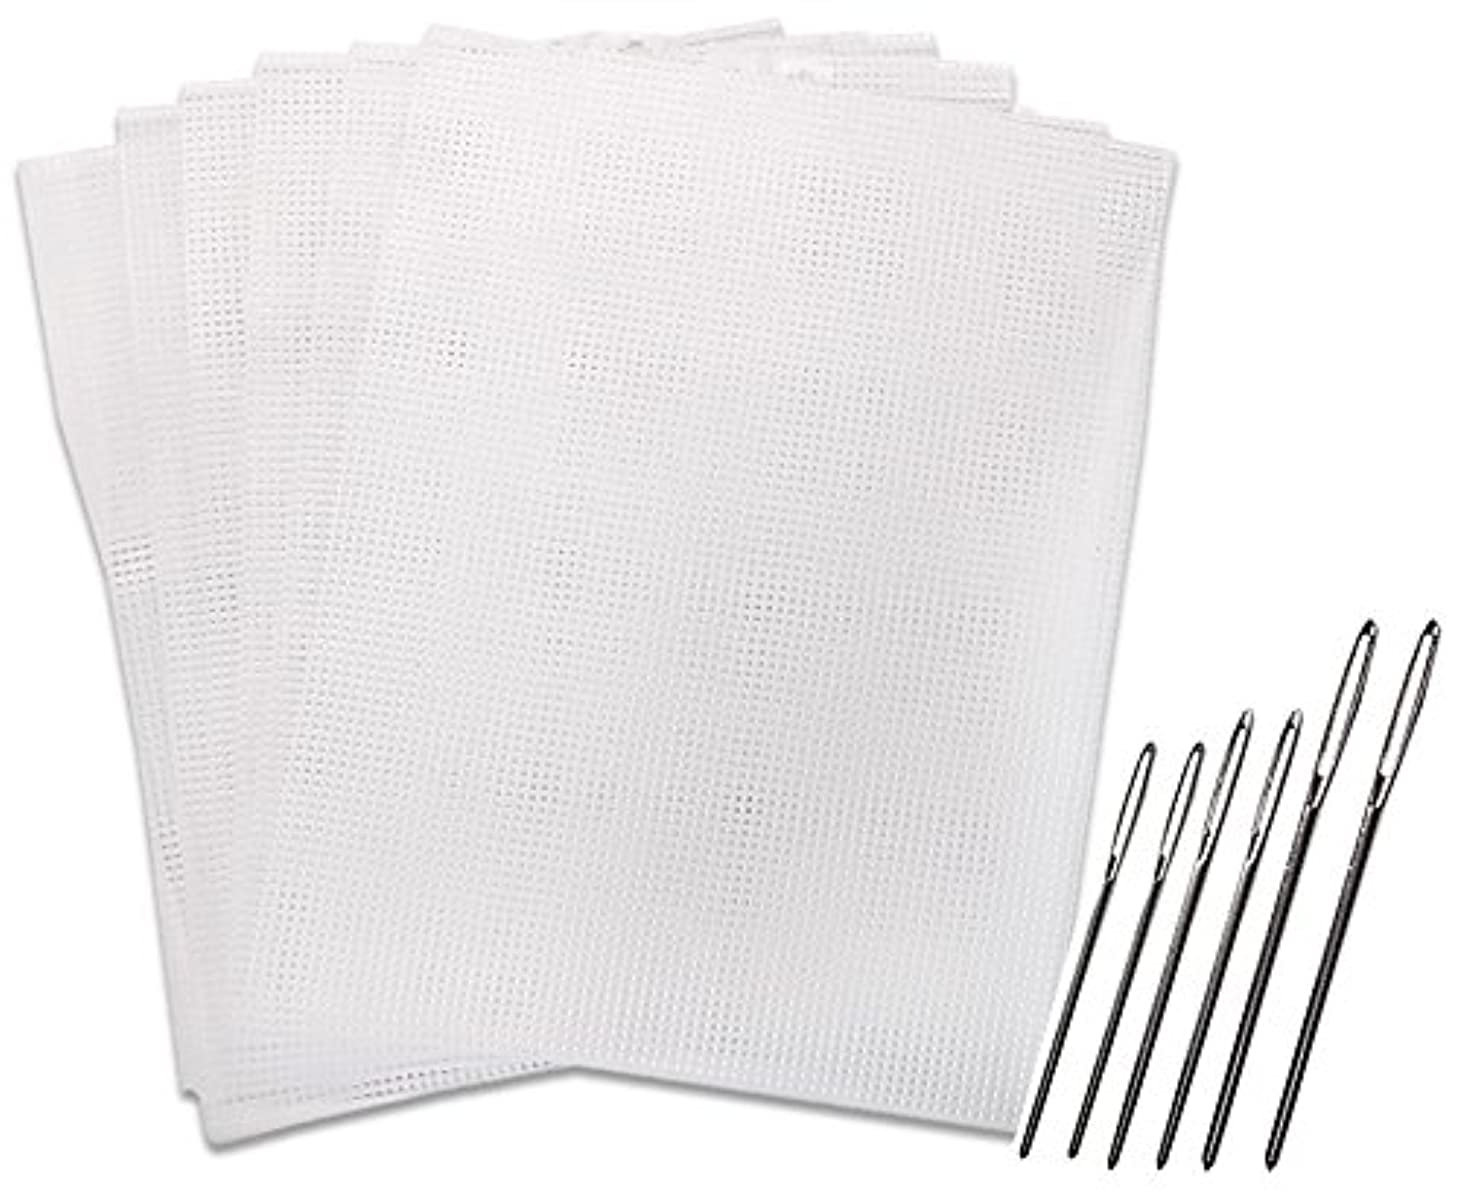 Clear Plastic Mesh Canvas Kits #7, 6 Sheets. with 6 Large Eye Blunt Needles, Sizes 13, 14 and 16, 2 of Each Size. (Plastic Canvas & Needles)